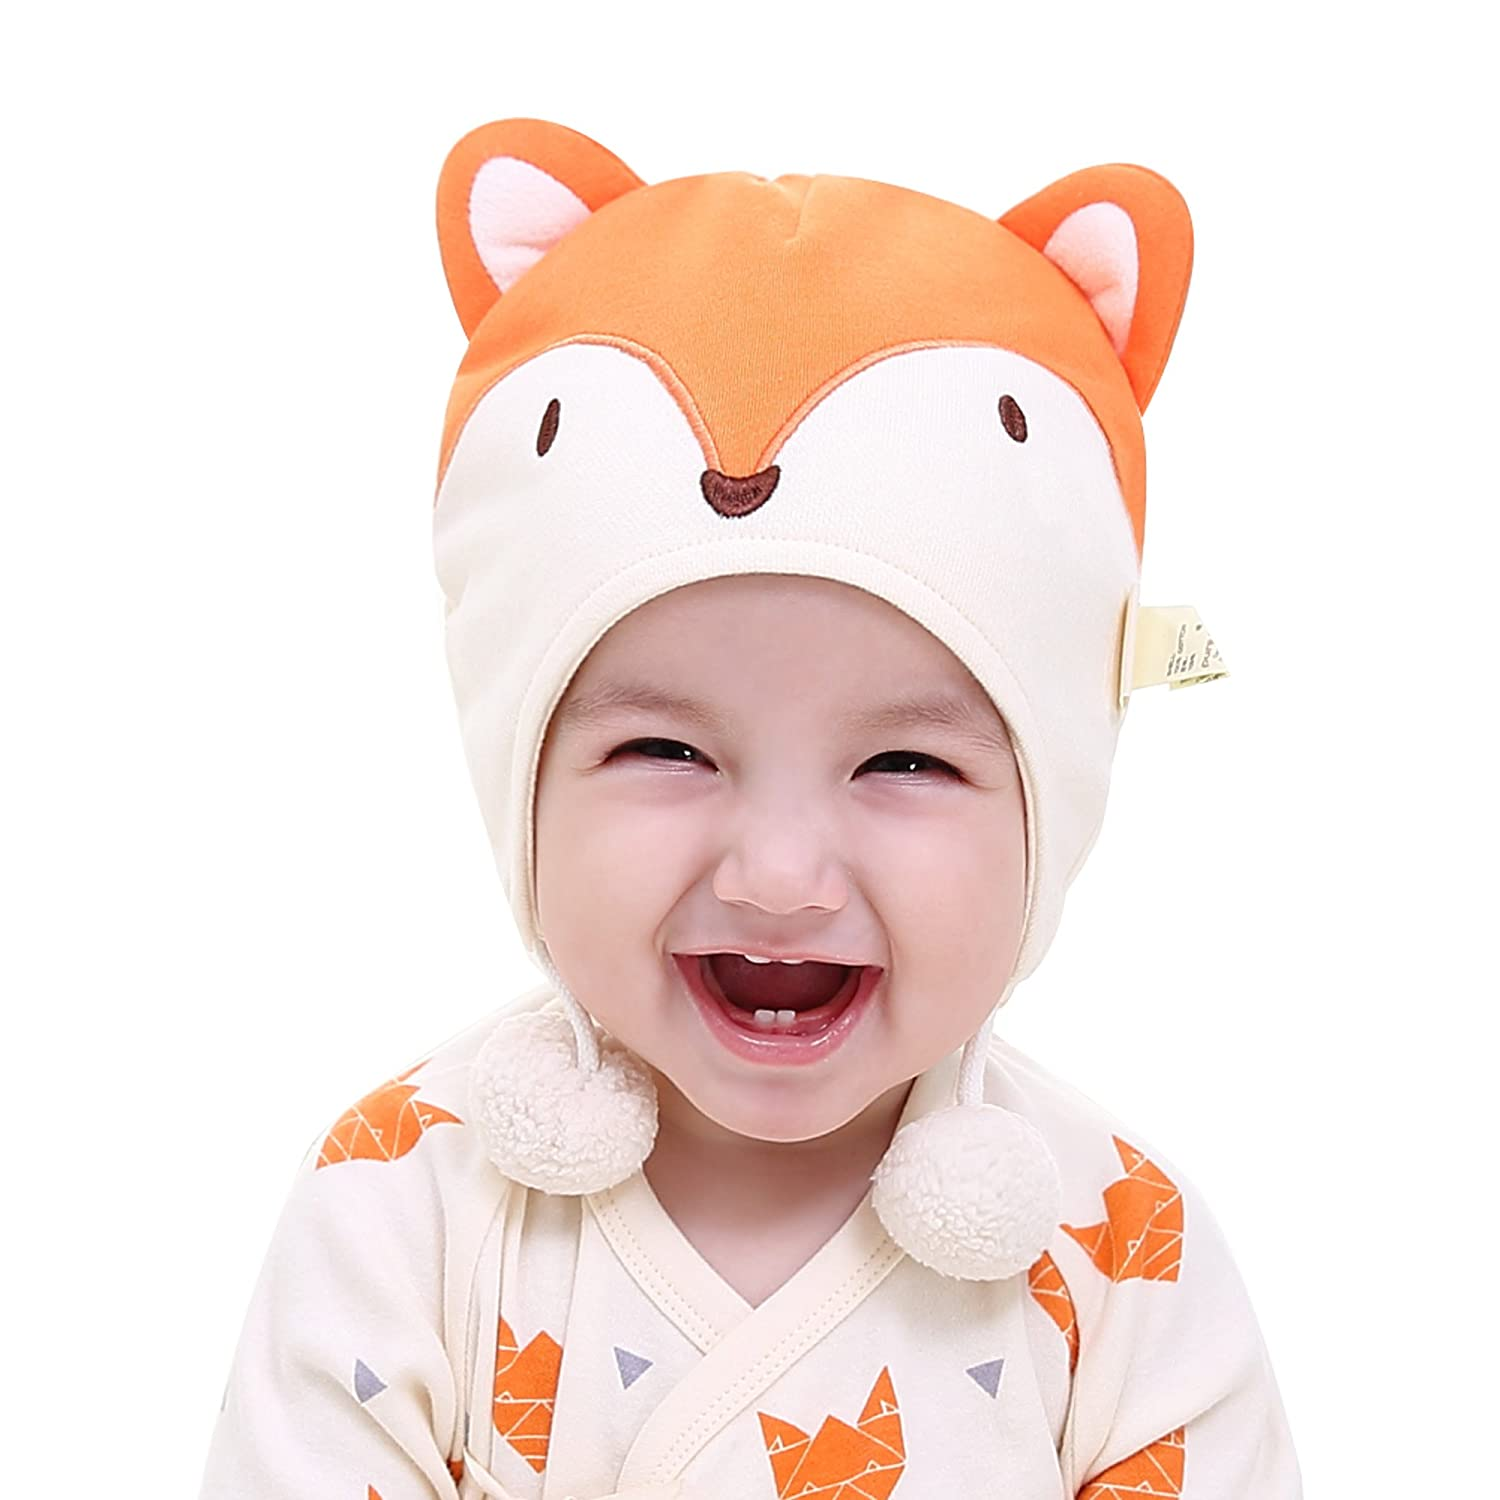 0d9207e03 pureborn Baby Fox Hat Pompom Hat Newborn Infant Beanies Cap Cotton Soft  Cute for Baby Boys Girls 0-15 Months